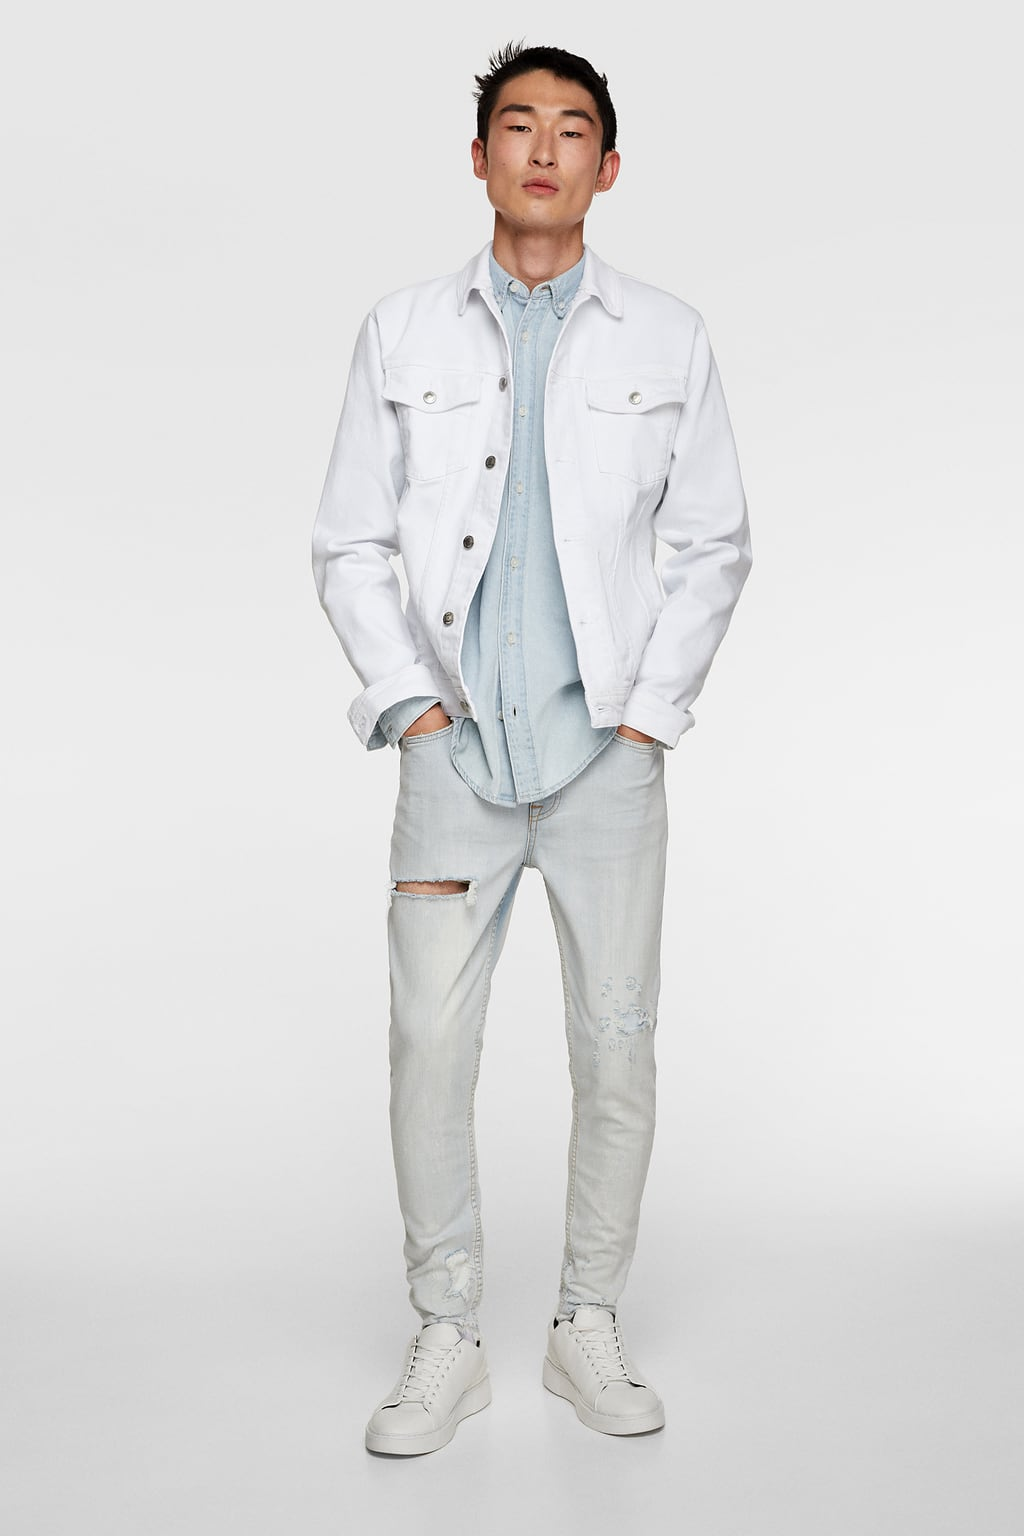 Men's denim looks